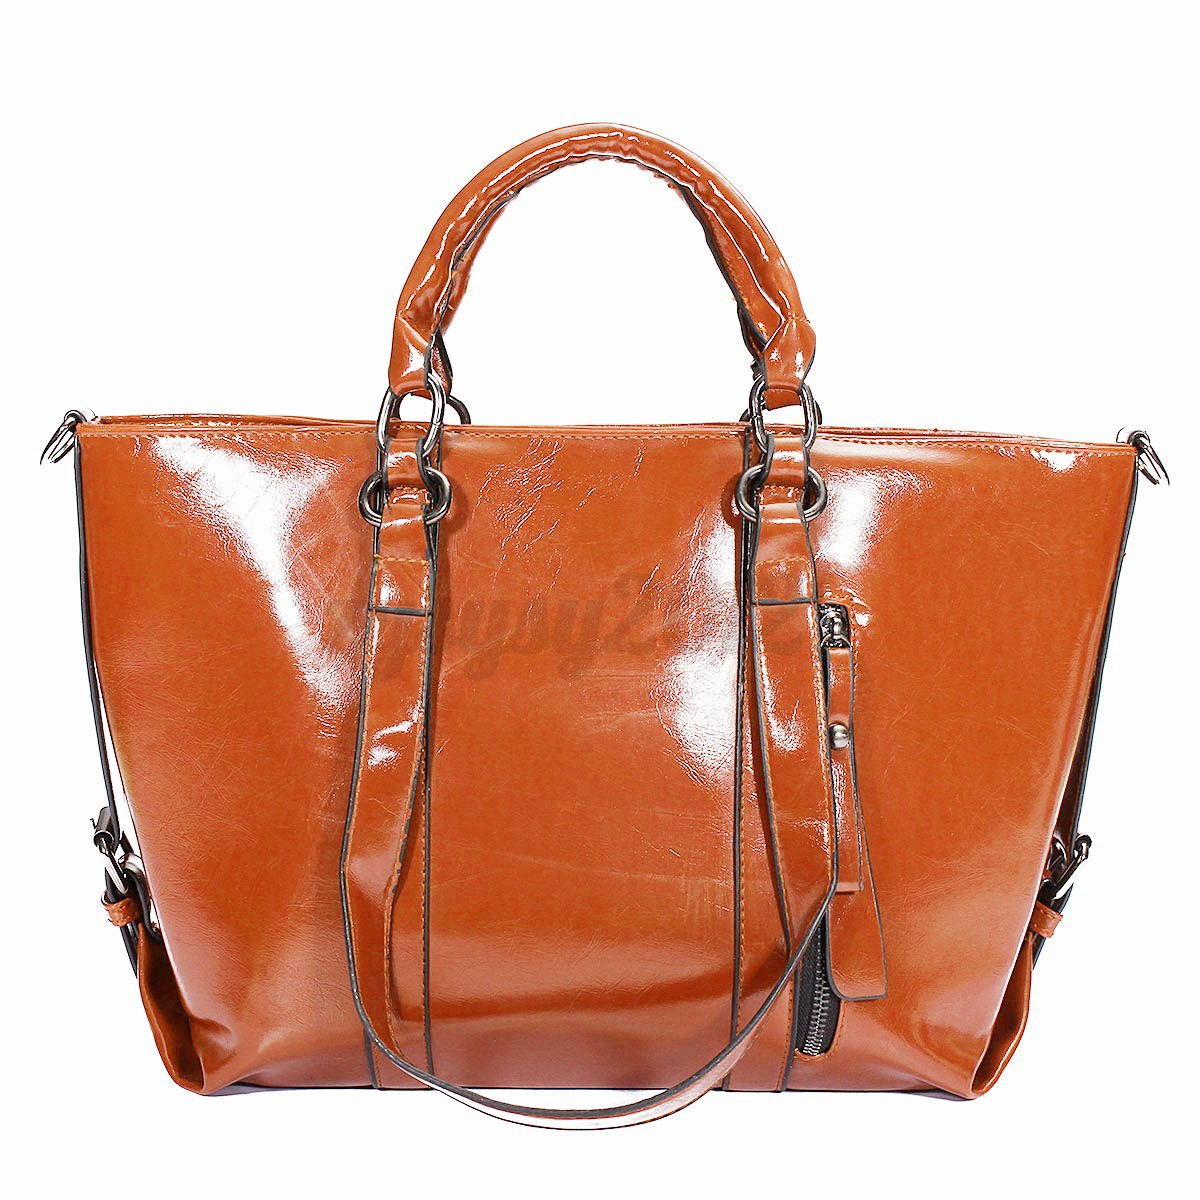 Find great deals on eBay for womens shoulder bag. Shop with confidence.